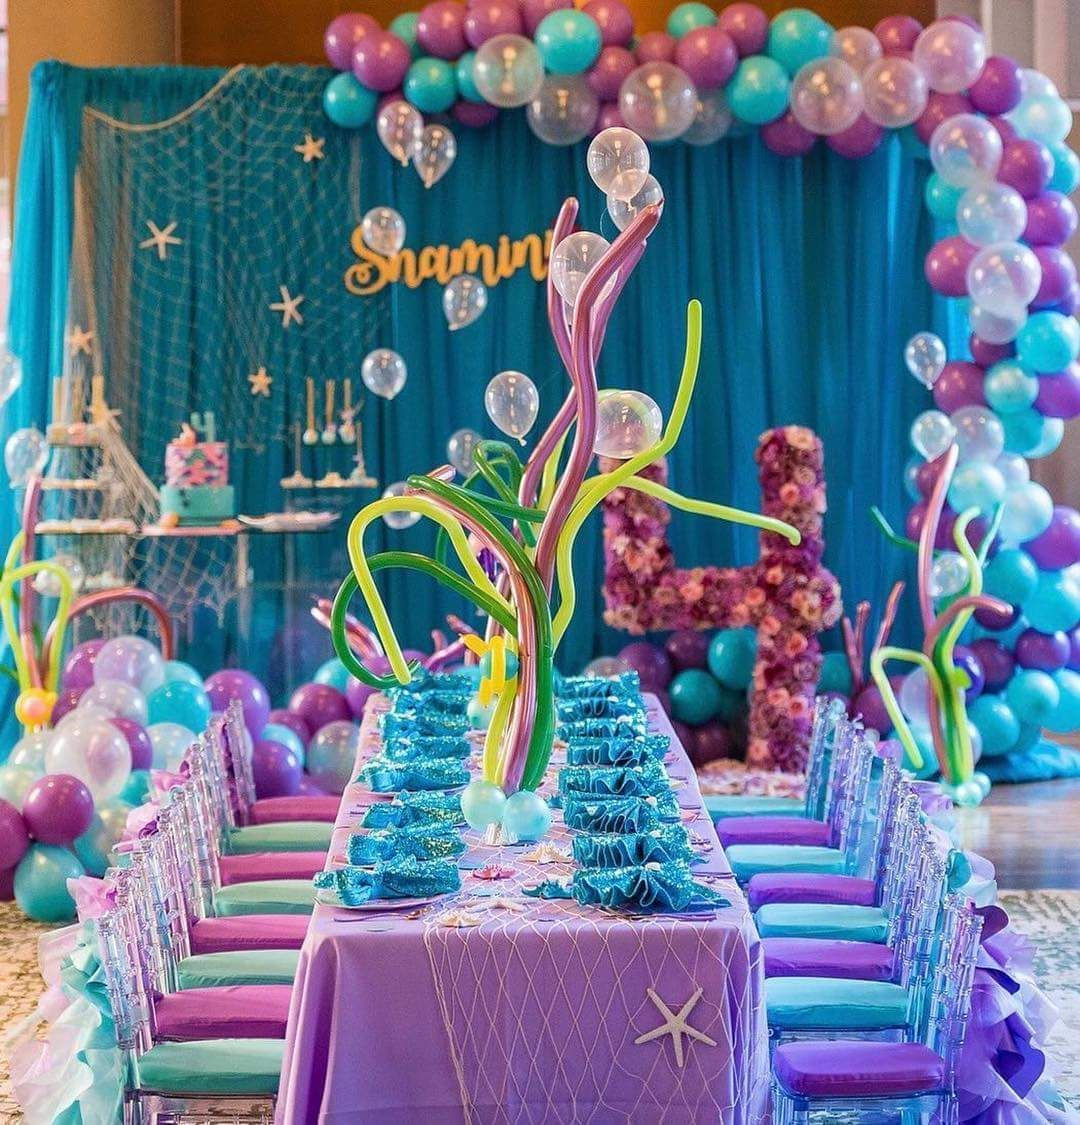 Pin by J B on Mermaid Party Pinterest Mermaid Mermaid parties